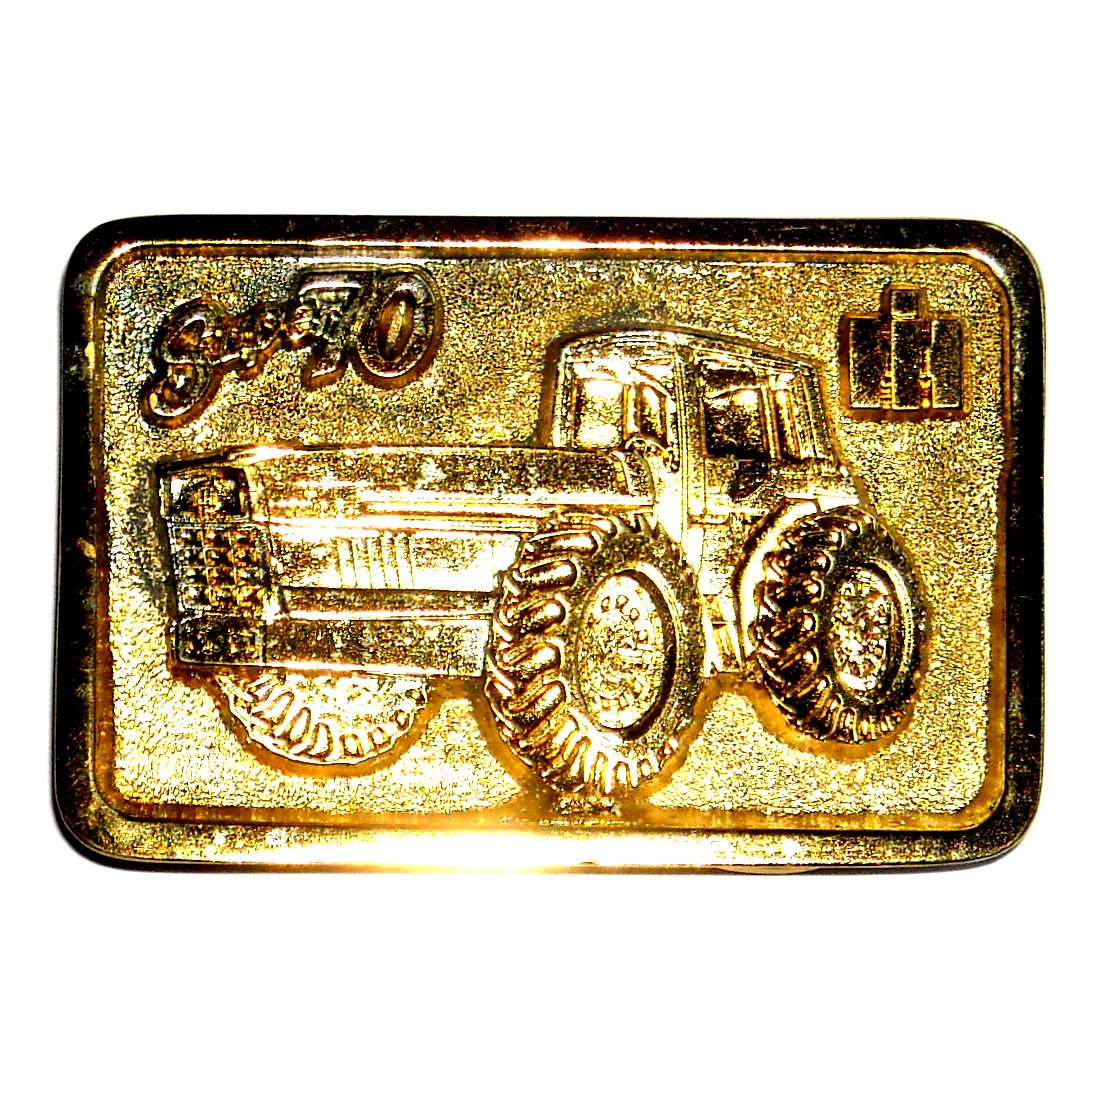 IH Super 70 Minneapolis Edition Gold Color Belt Buckle